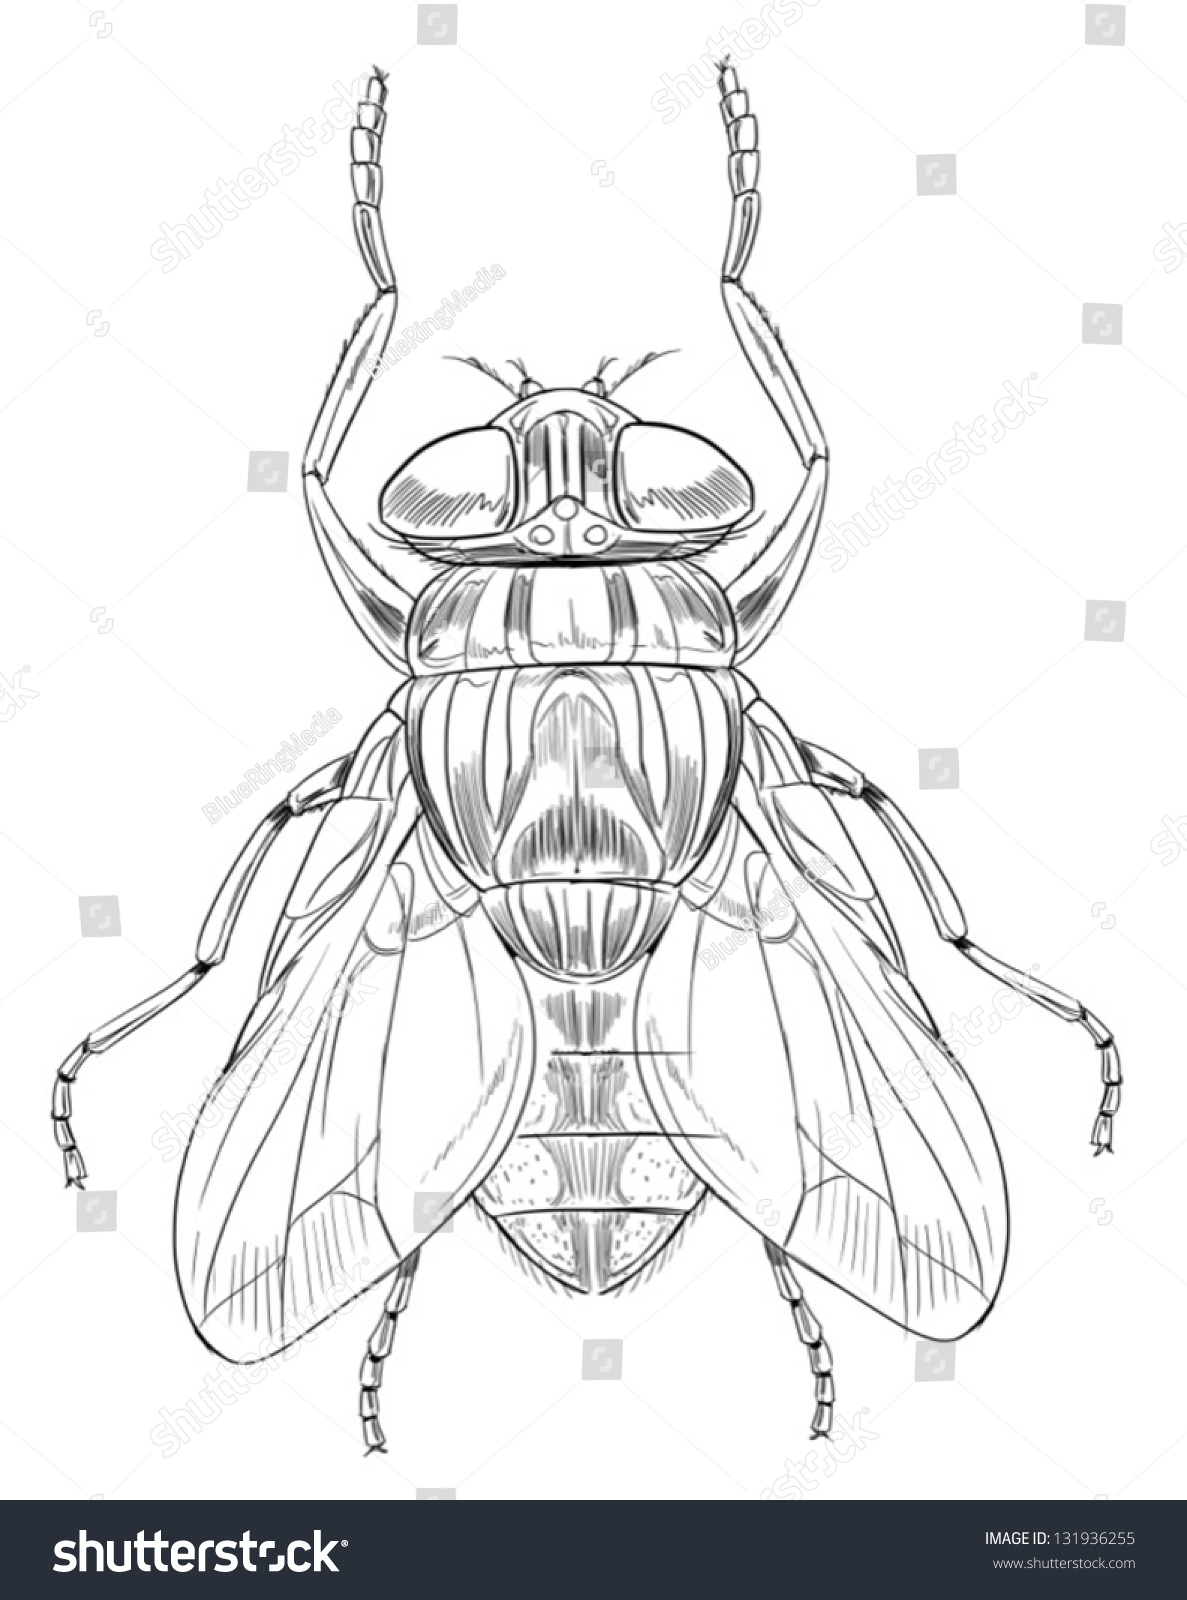 hight resolution of common housefly musca domestica